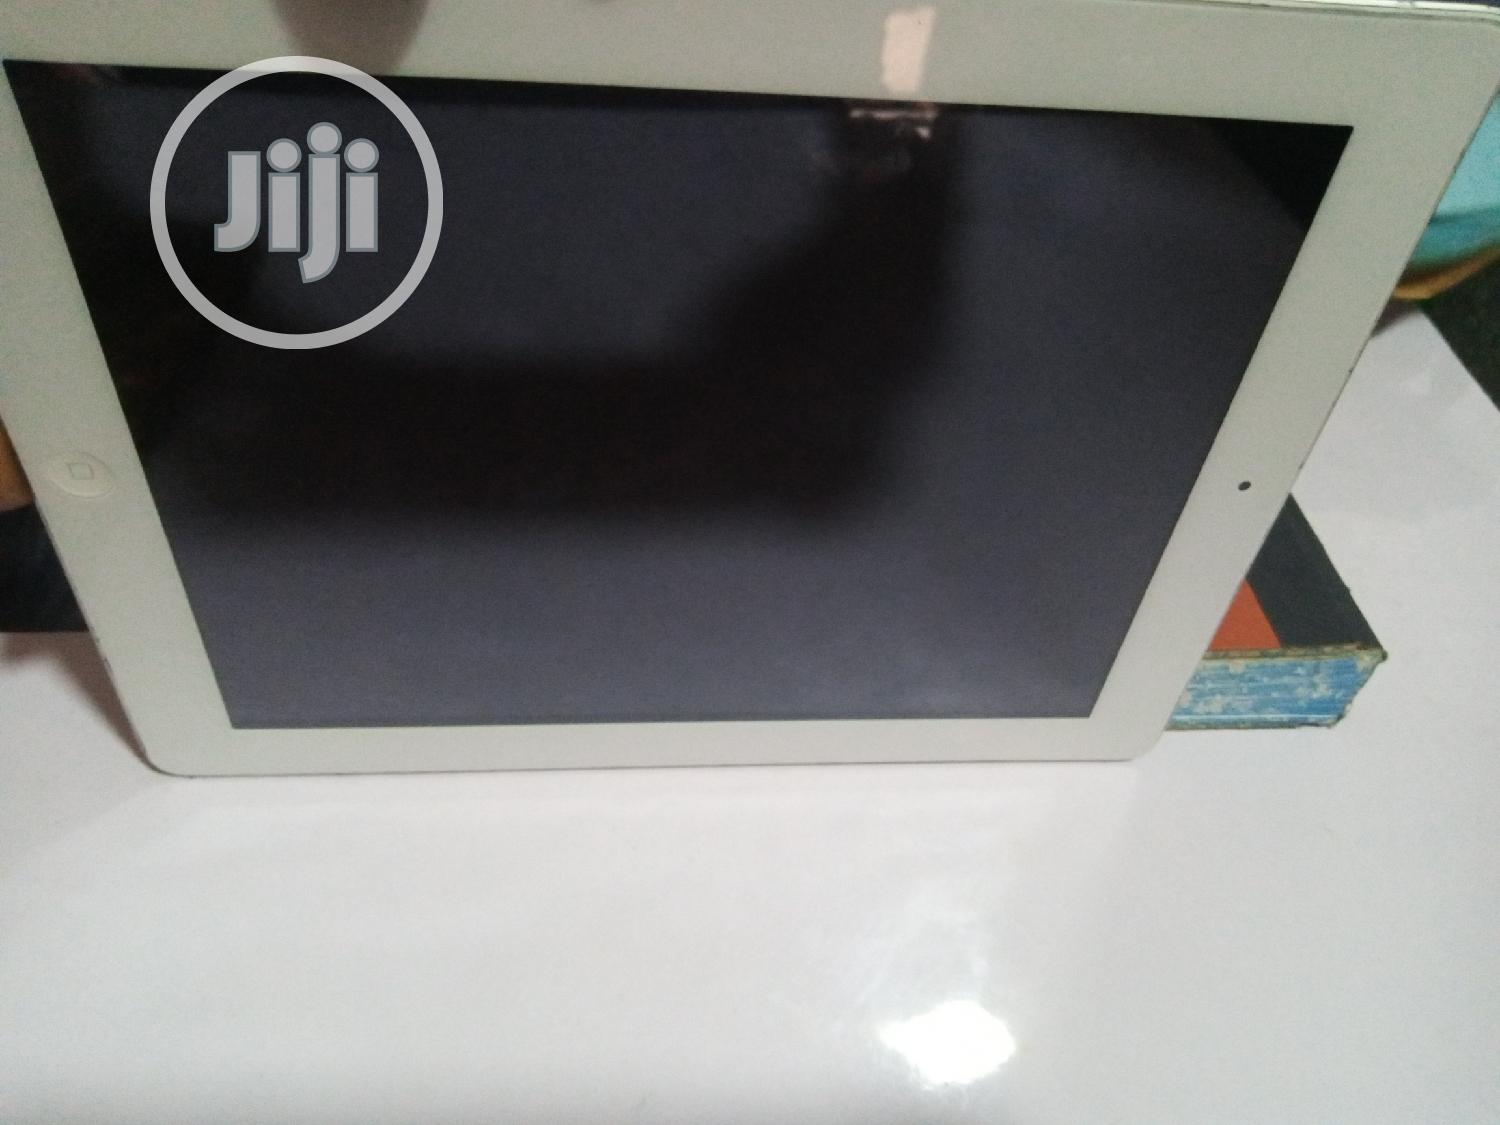 New Apple iPad 4 Wi-Fi 16 GB White | Tablets for sale in Ikeja, Lagos State, Nigeria